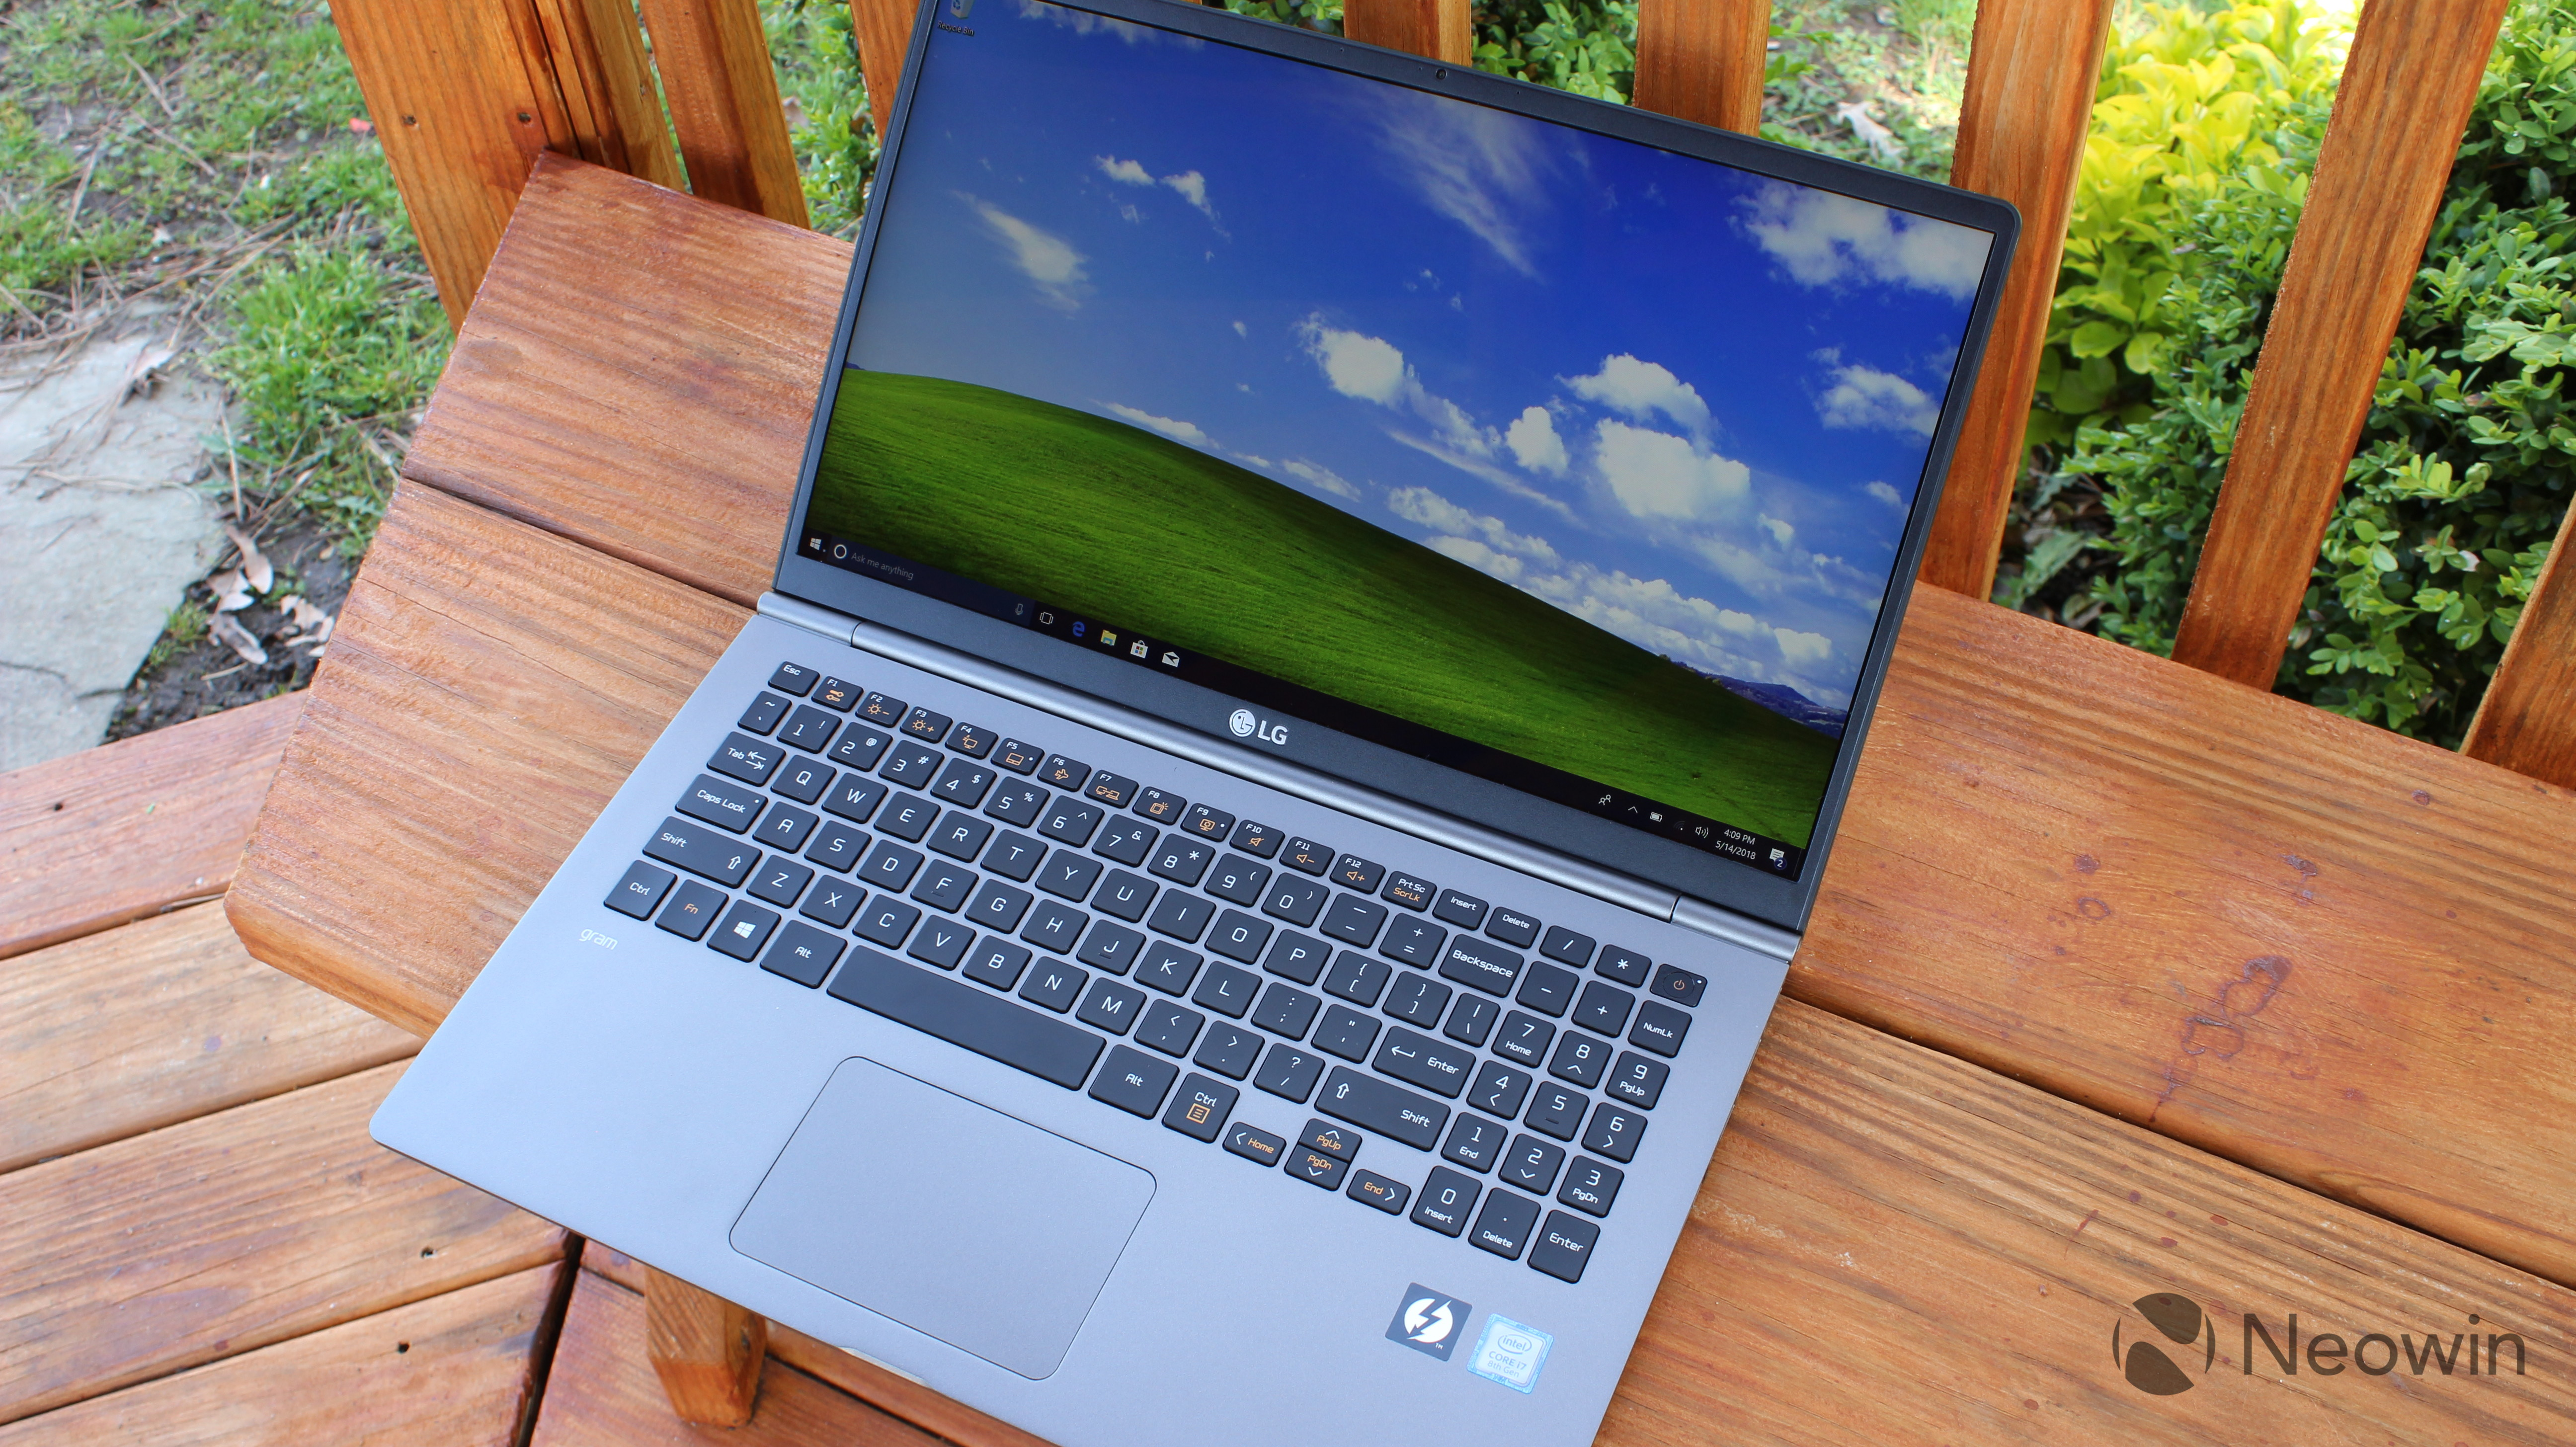 LG gram review: The lightest 15 6-inch laptop doesn't make